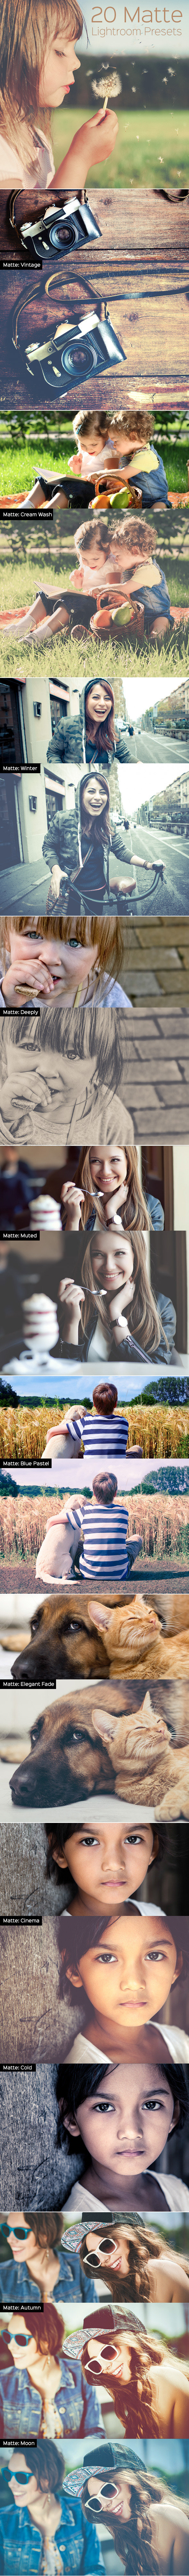 GraphicRiver Matte Lightroom Presets 9814569